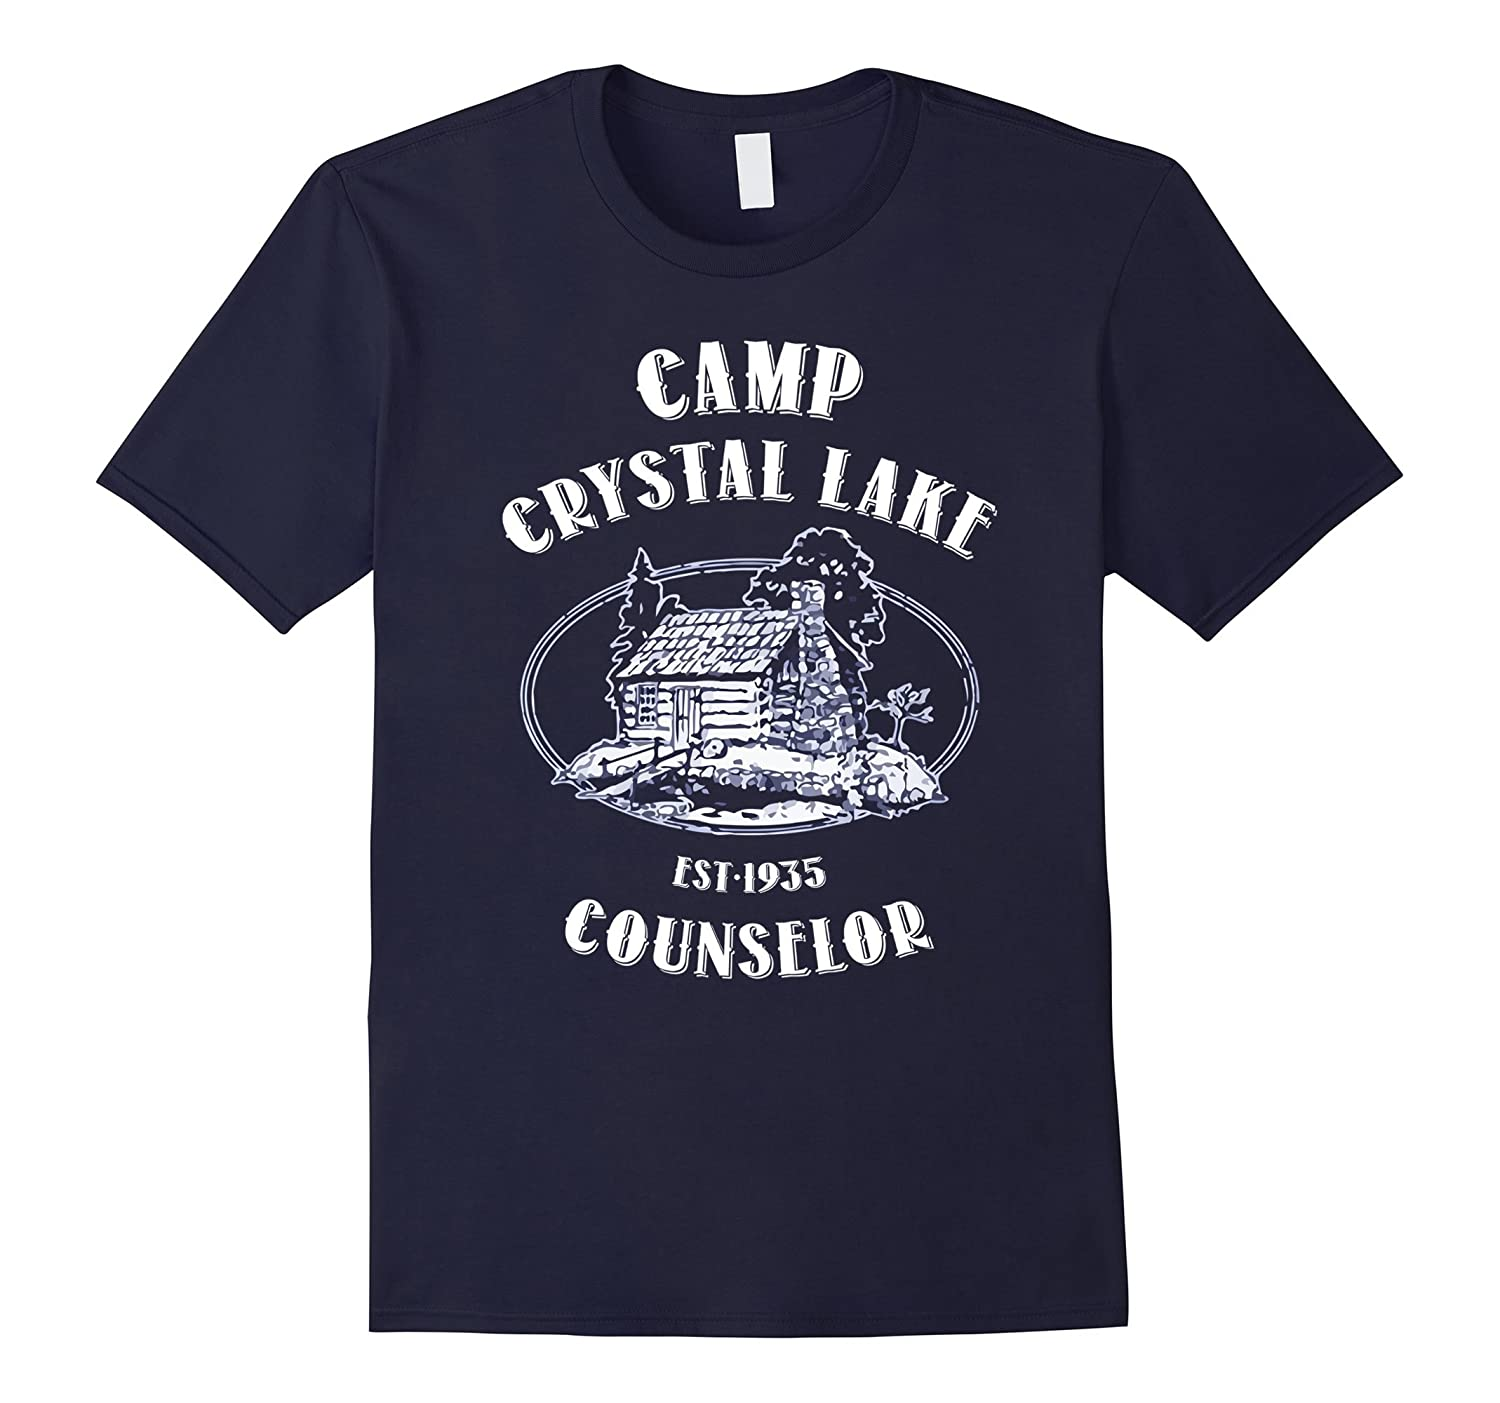 Camp shirts gifts Crystal Lake Counselor Vintage retro style-T-Shirt